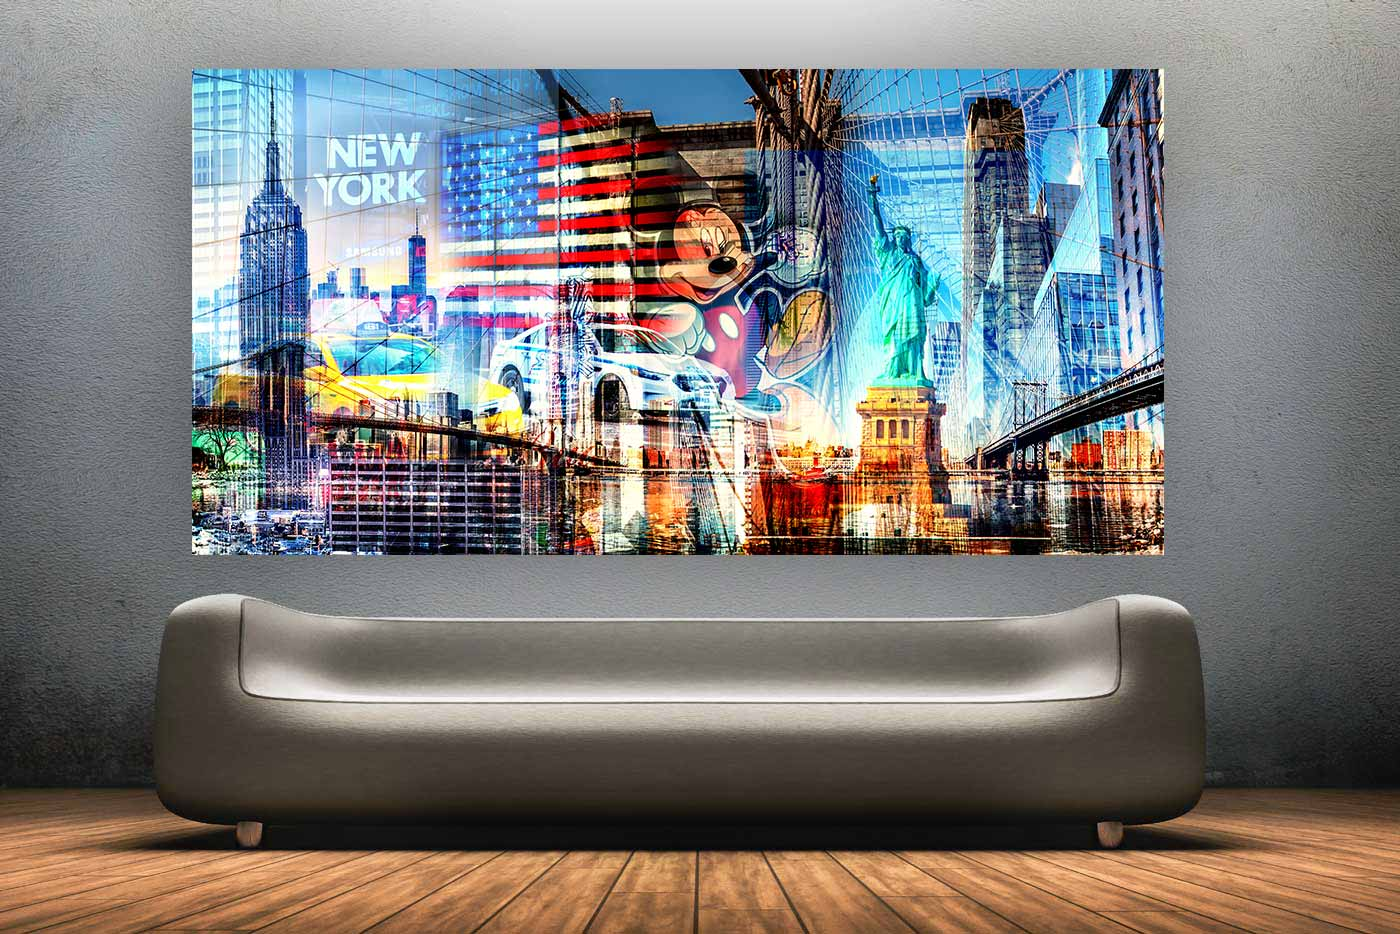 kunstbilder new york city panorama und xl bilder f r deine wand. Black Bedroom Furniture Sets. Home Design Ideas